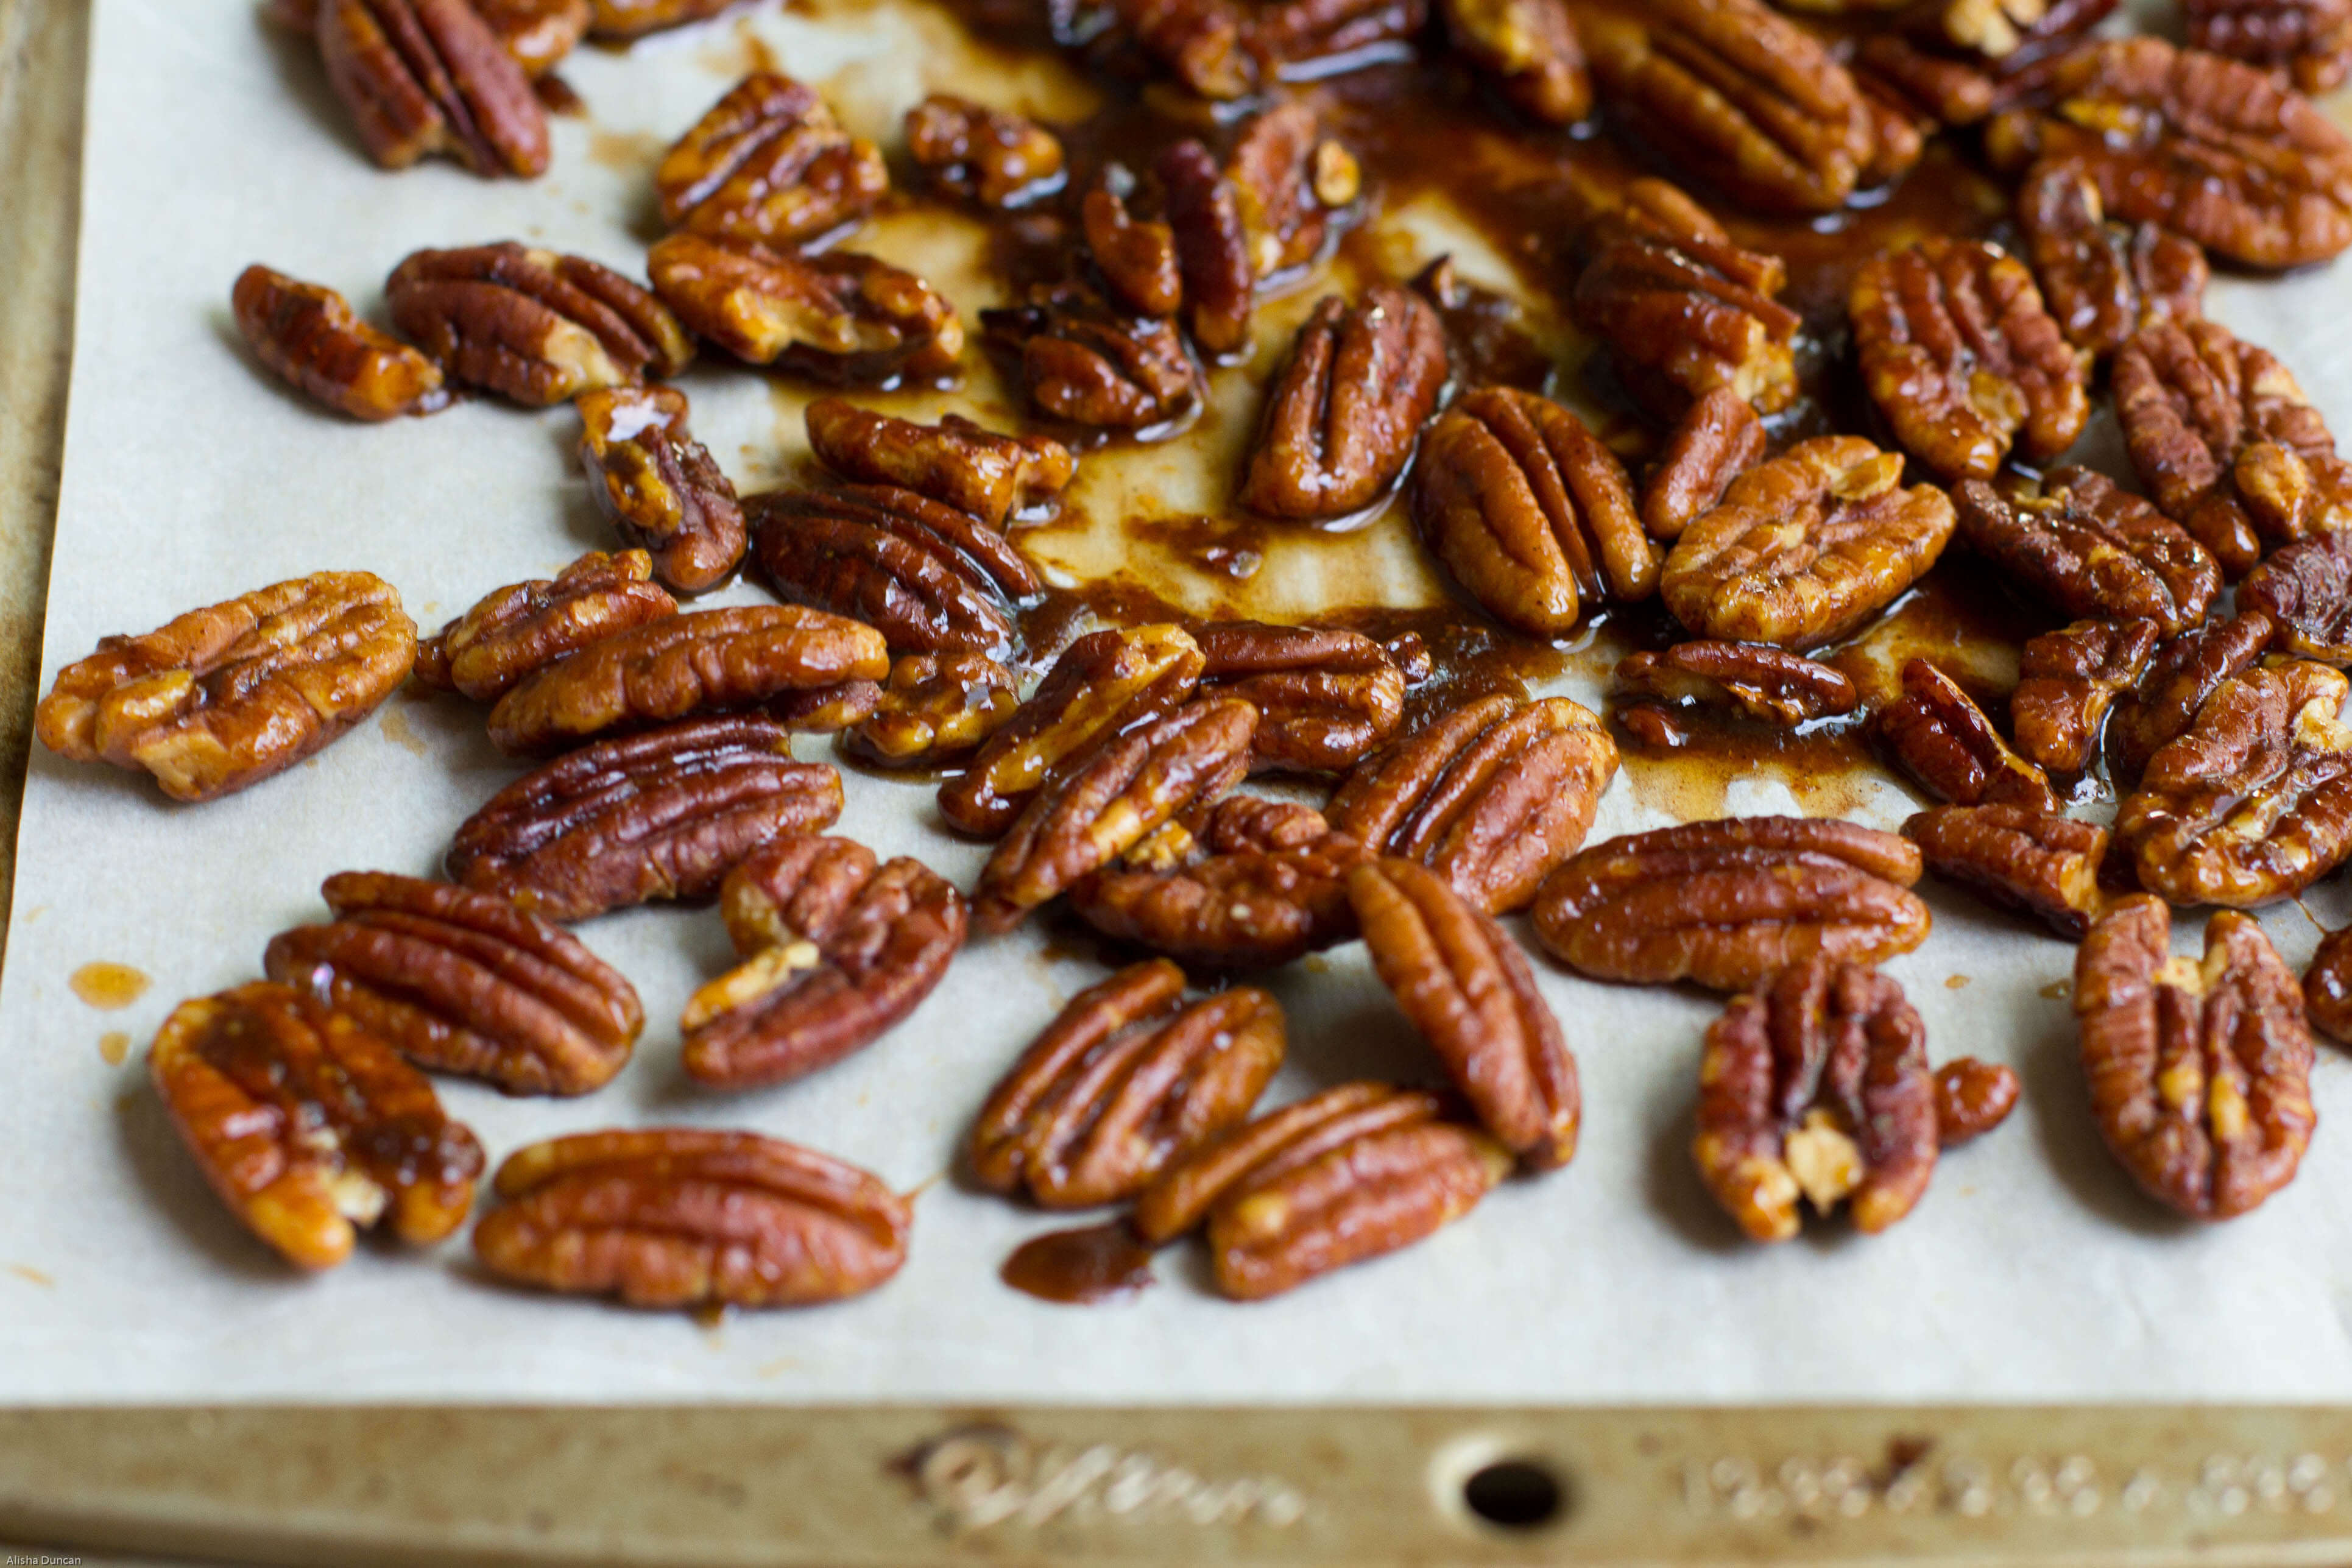 TOTS Family, Parenting, Kids, Food, Crafts, DIY and Travel IMG_4553 Spicy Candied Pecans Recipe Food Miscellaneous Recipes TOTS Family  recipe pecans nuts food easy recipe